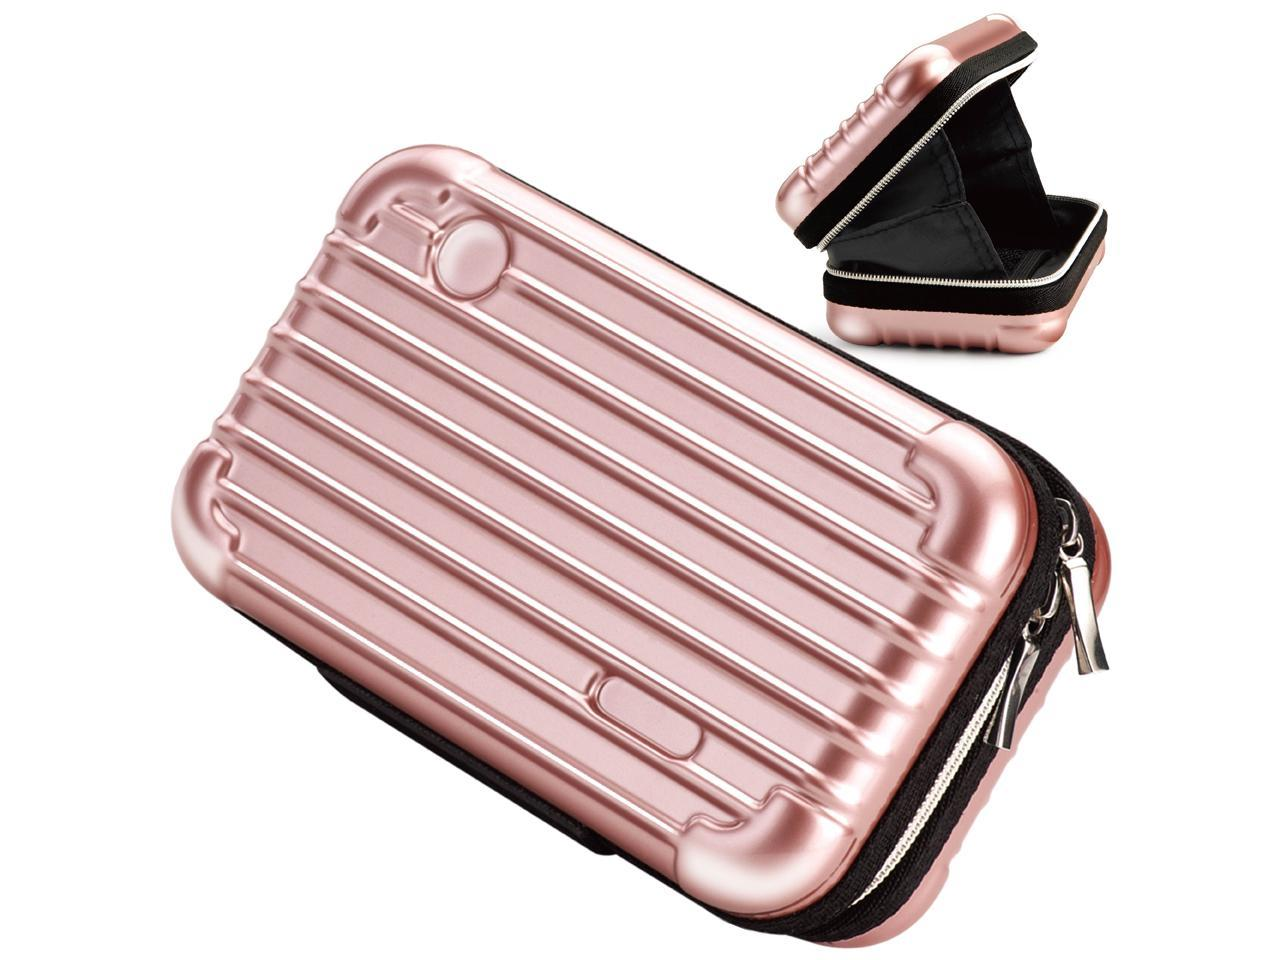 E Books U5 Beauty Makeup Overnight Travel Carrying Cosmetic Toiletry Train Hard Bags Handbag Cases Organizer With Zipper And Inner Pocket Water Resistant Crashproof Shockproof For Women Rose Gold Newegg Com